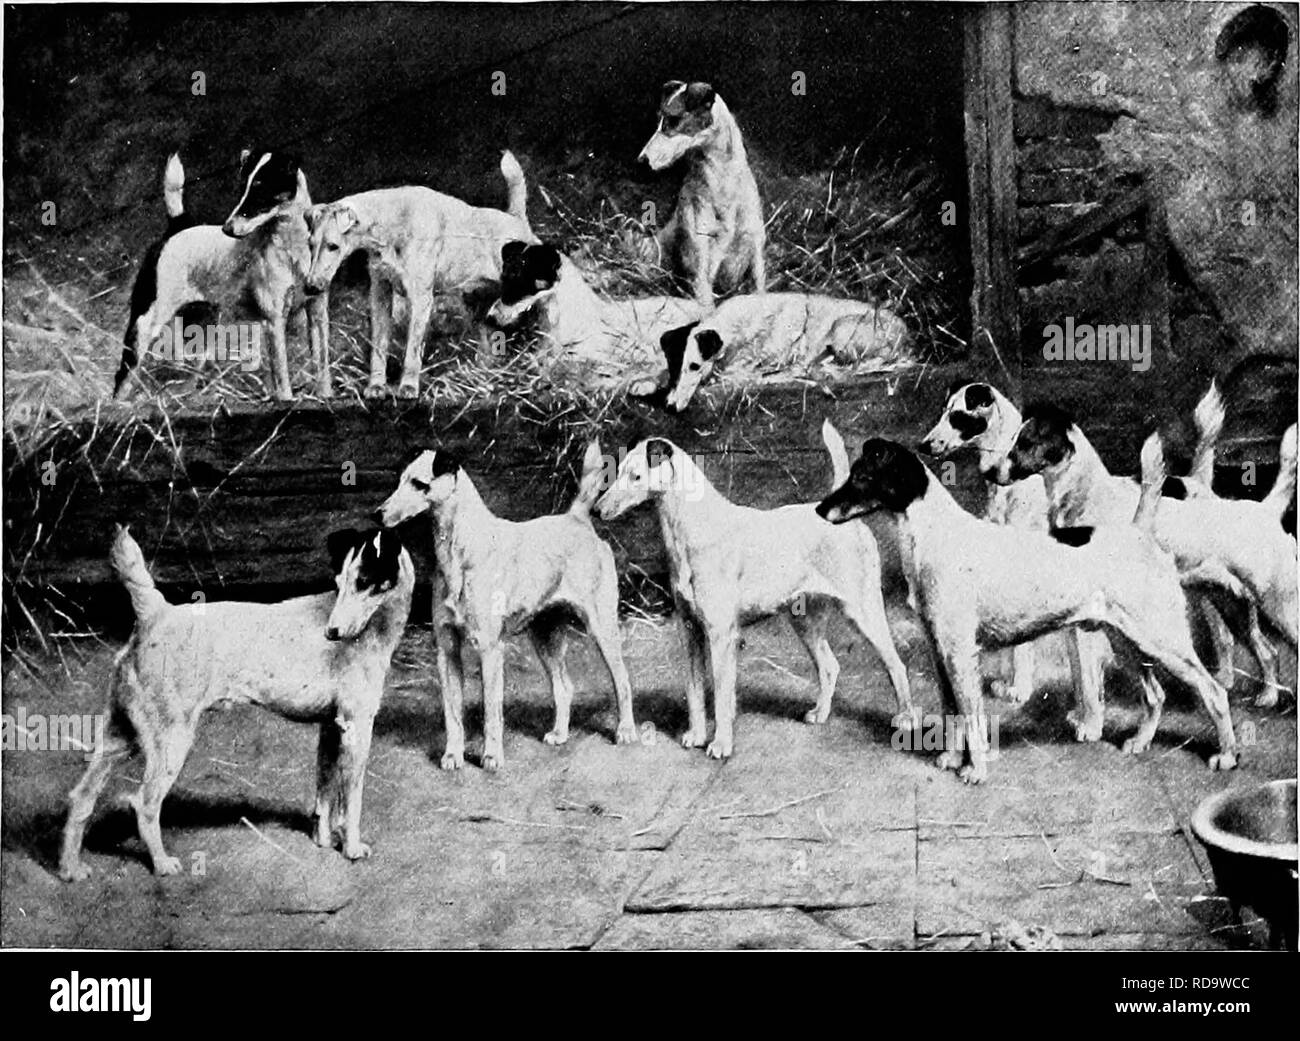 Brindle Colour Black and White Stock Photos & Images - Alamy